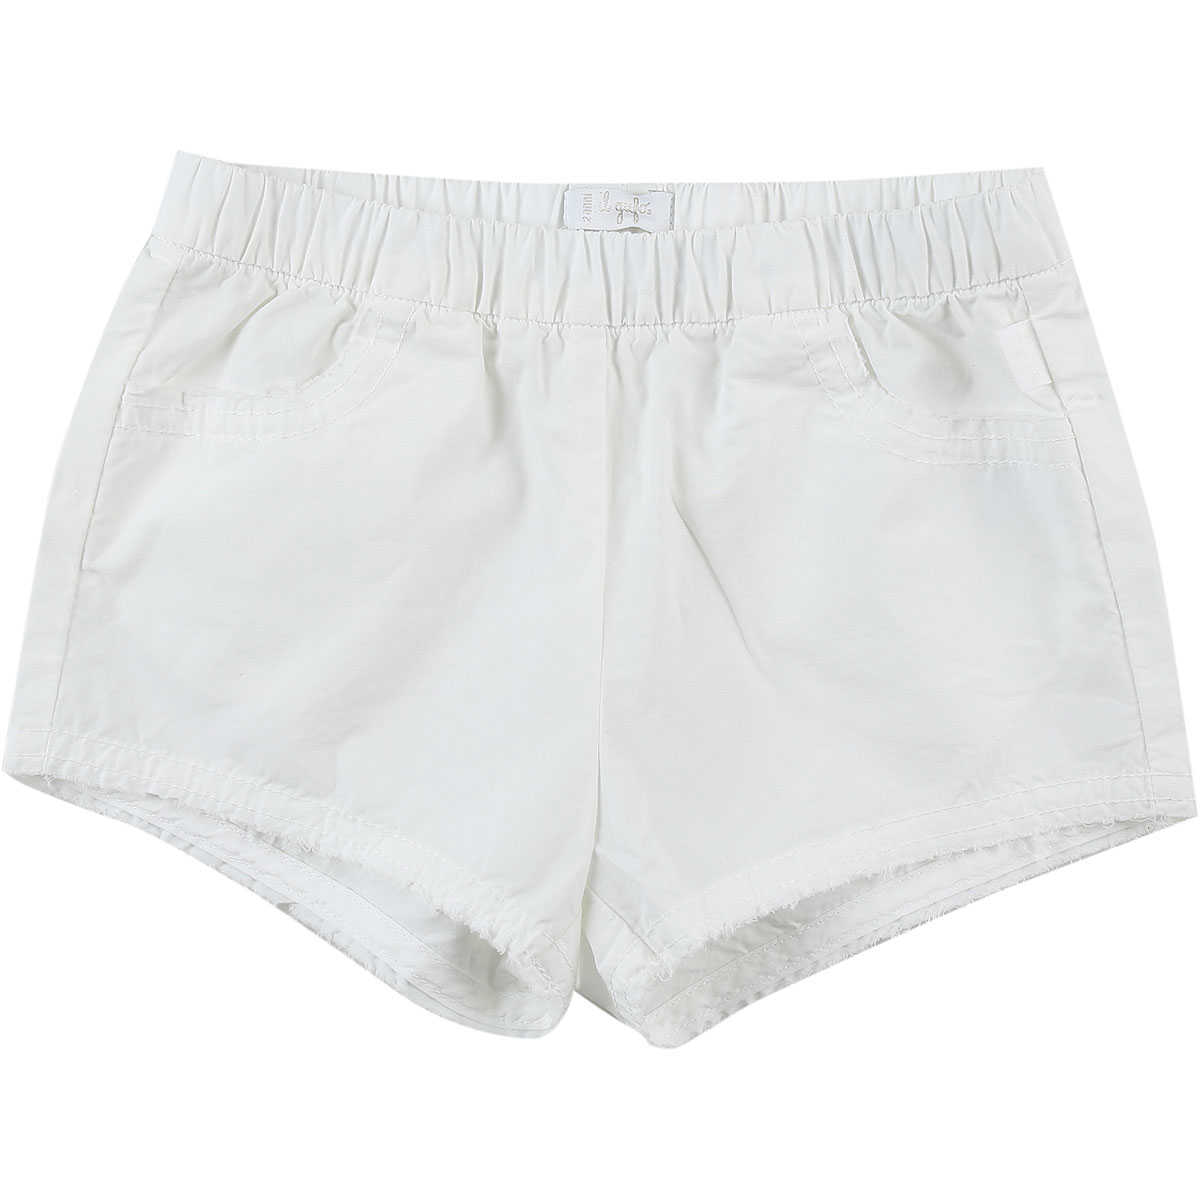 Il Gufo Baby Shorts for Girls On Sale in Outlet White SE - GOOFASH